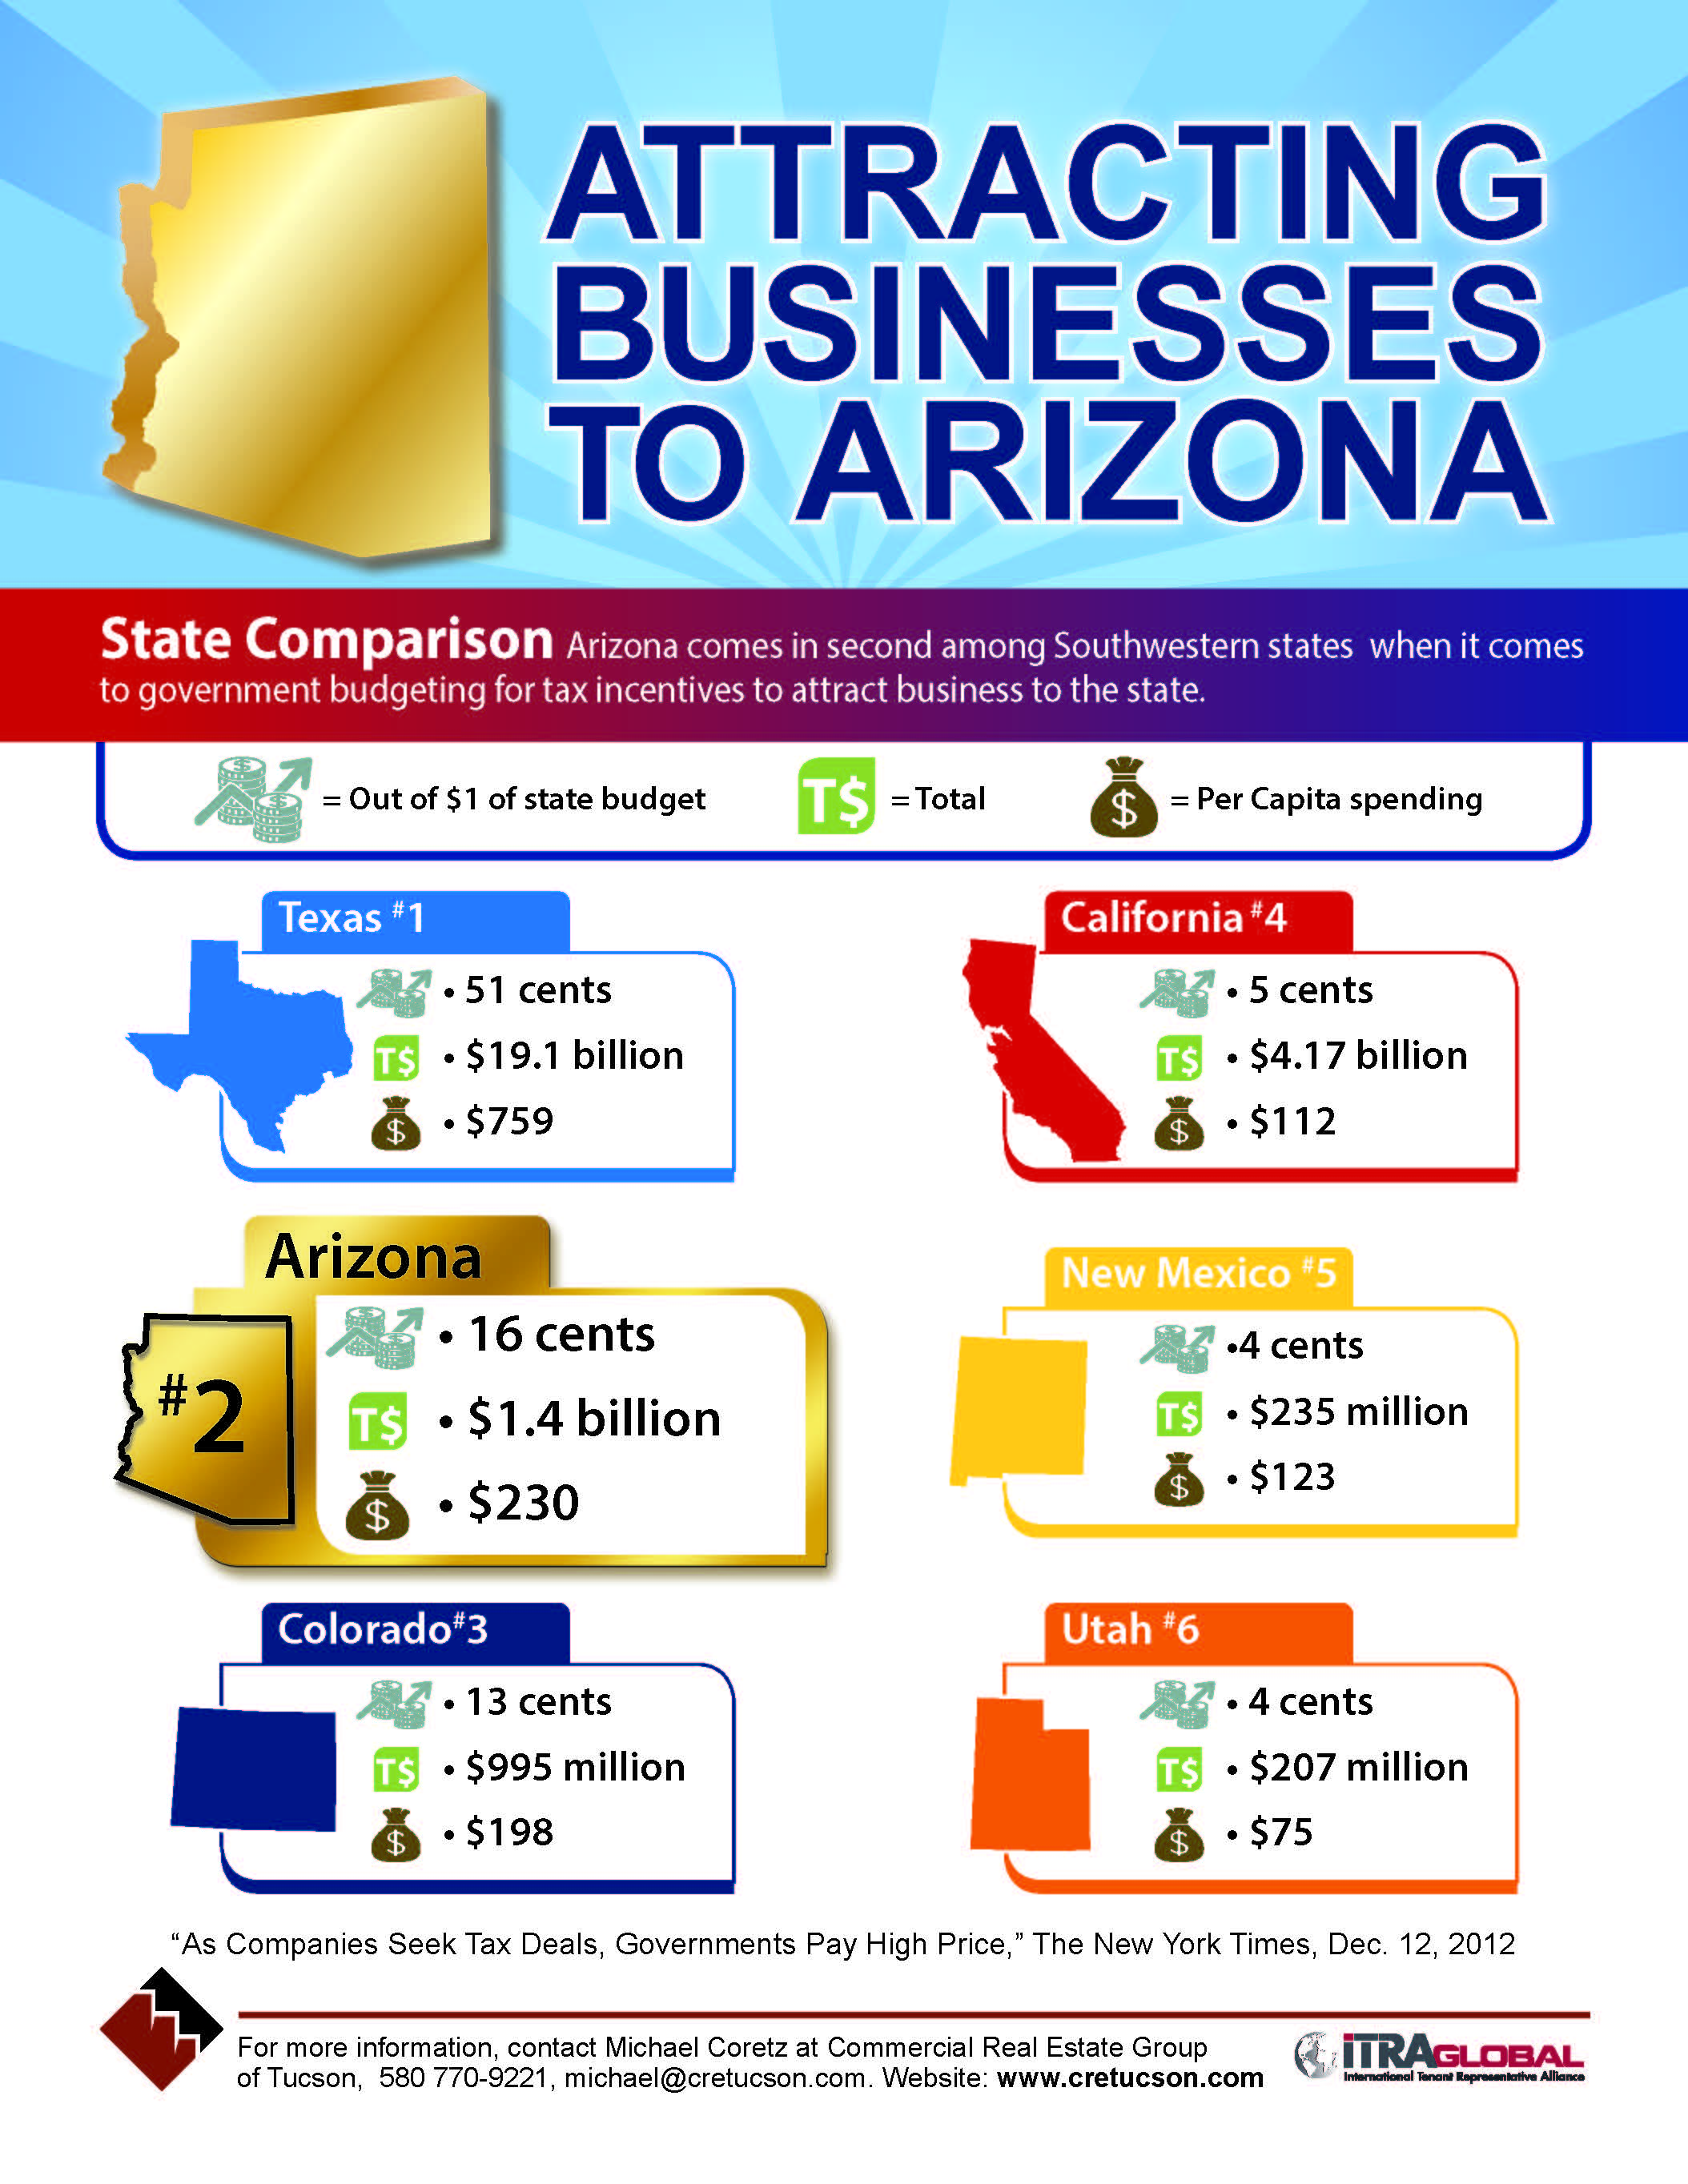 2013 Attracting Business to Arizona State Comparison Inforgraphic (Img)